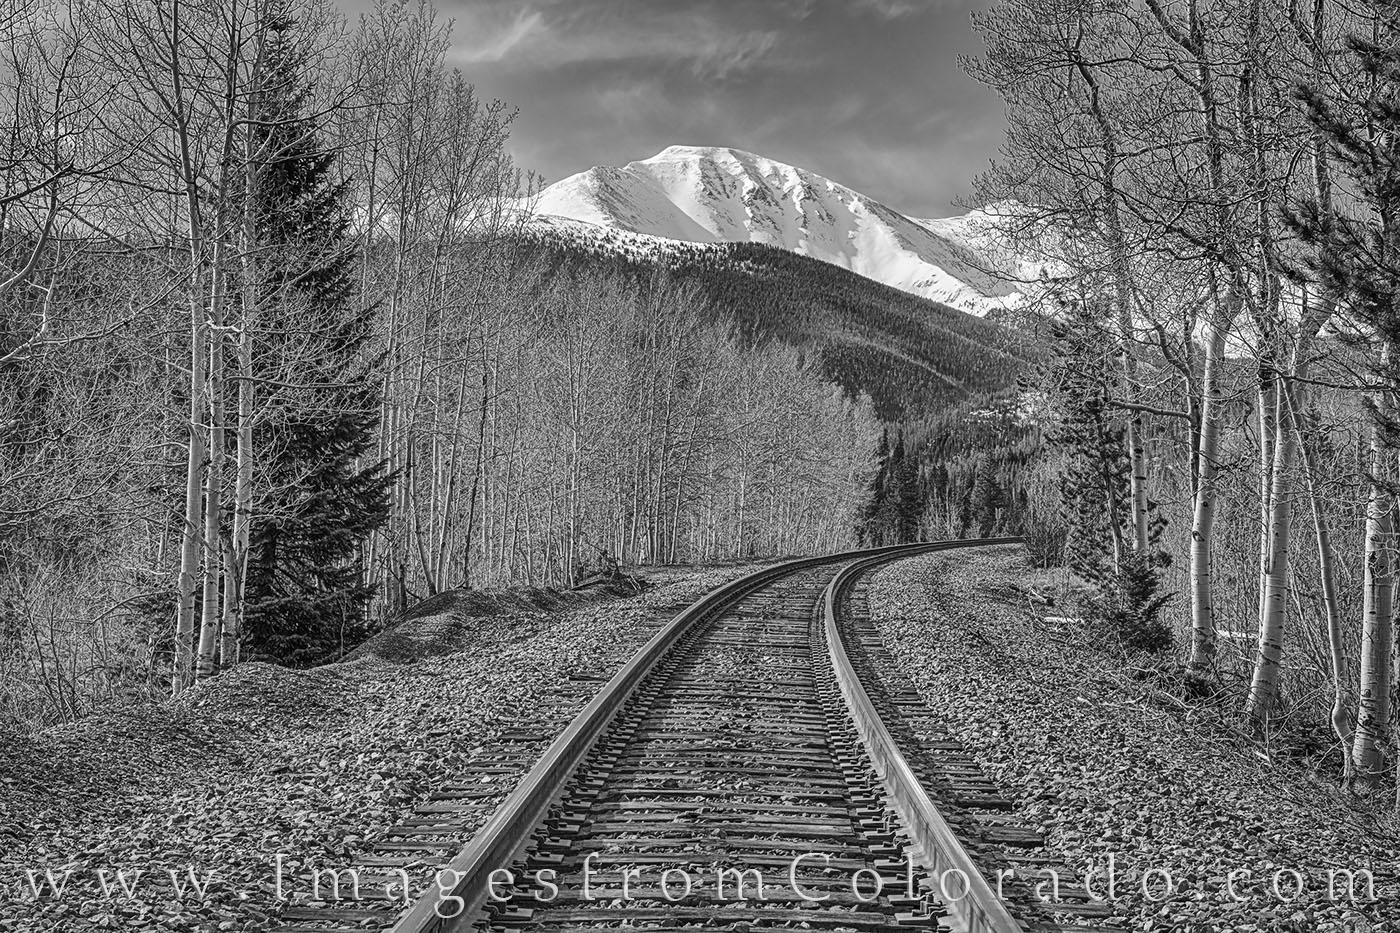 From just outside the resort town of Winter Park, Colorado, train tracks head towards the ski base and Continental Divide. With...